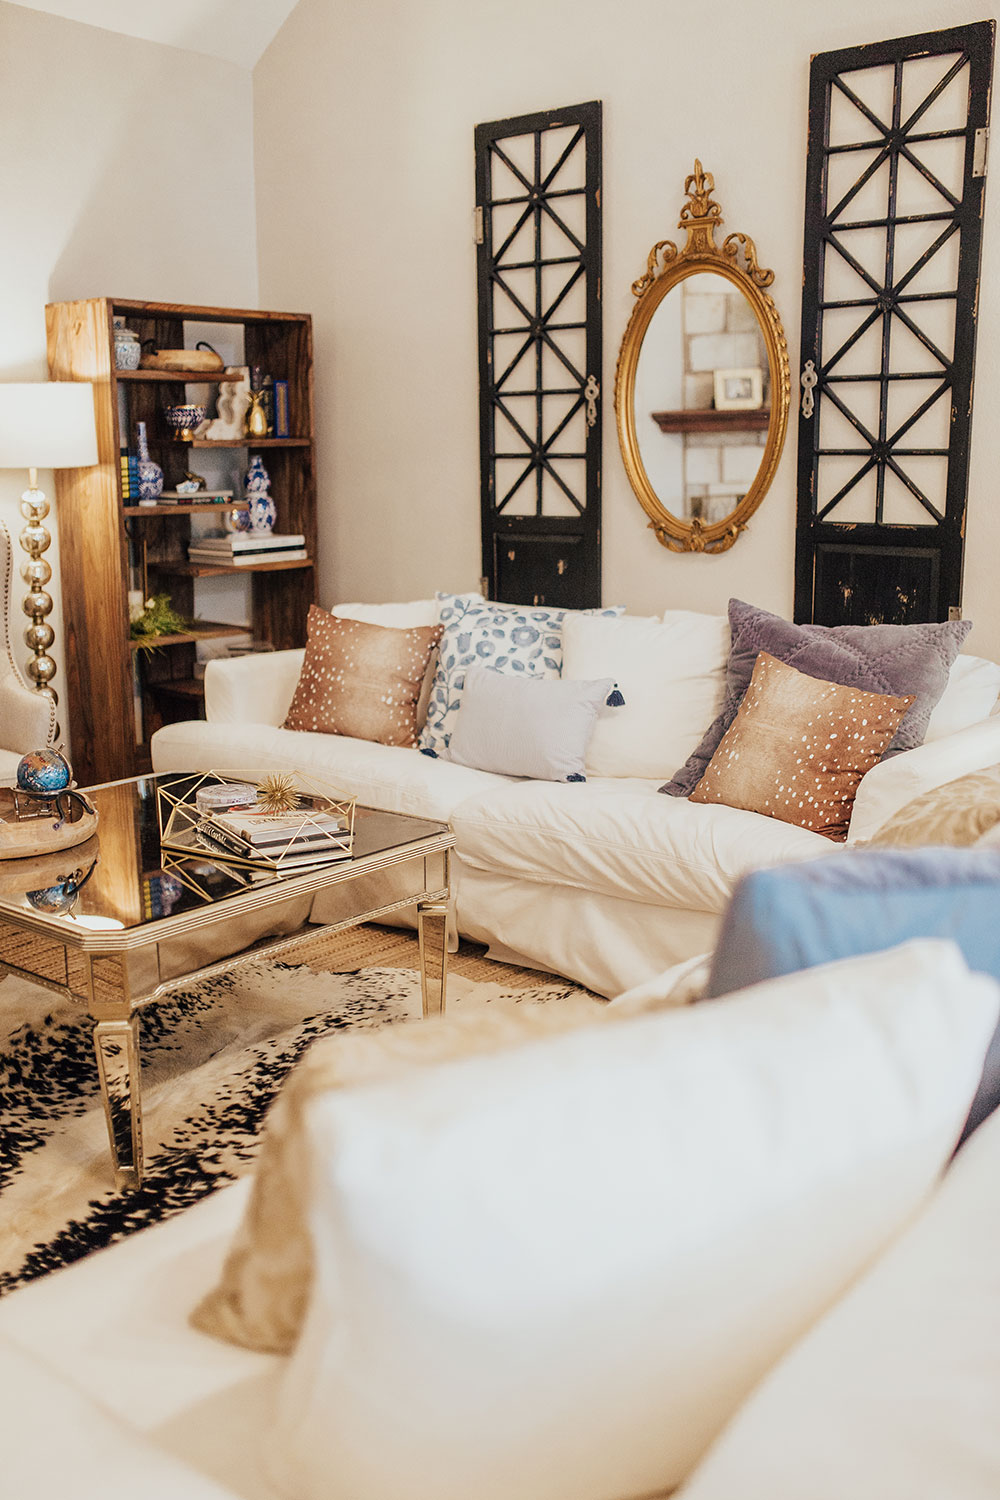 Our Modern Farmhouse Meets French Country Living Room Reveal Vandi Fair,Disney Christmas Outdoor Decorations